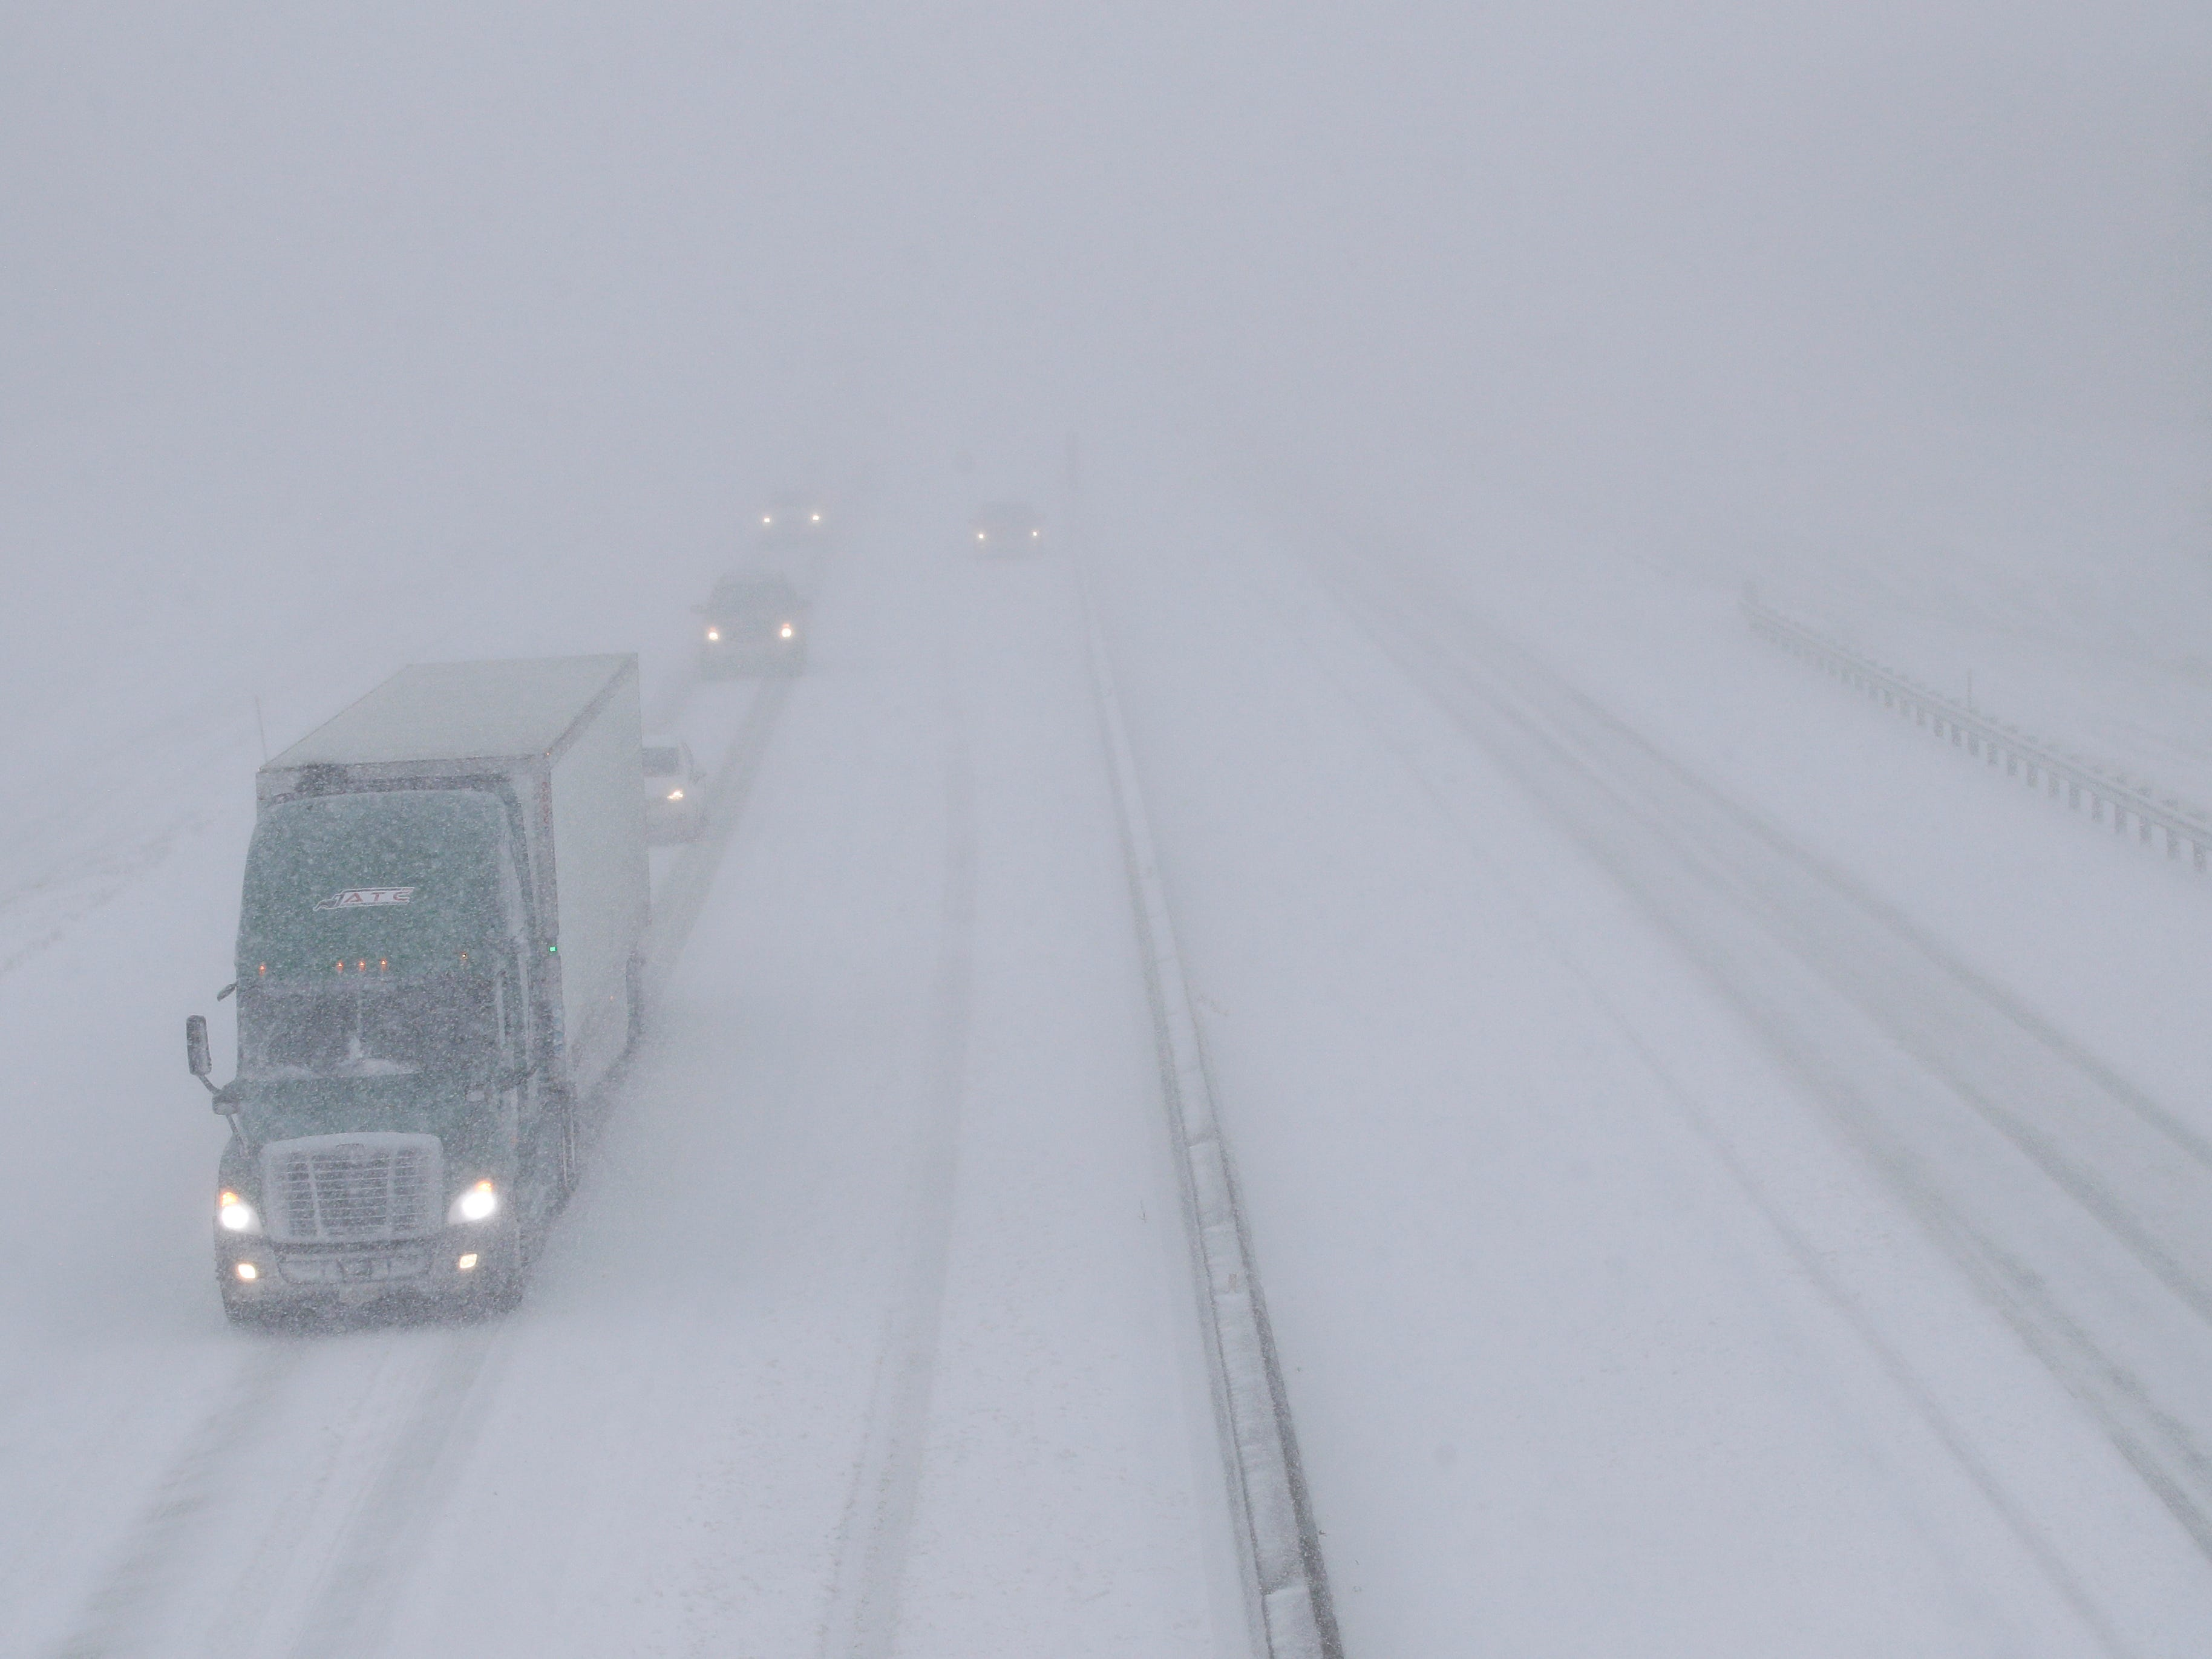 Traffic moves west along I-70 near Lawrence, Kan. on Nov. 25, 2018. The interstate is closed west of Junction City, Kan. because of the weather.